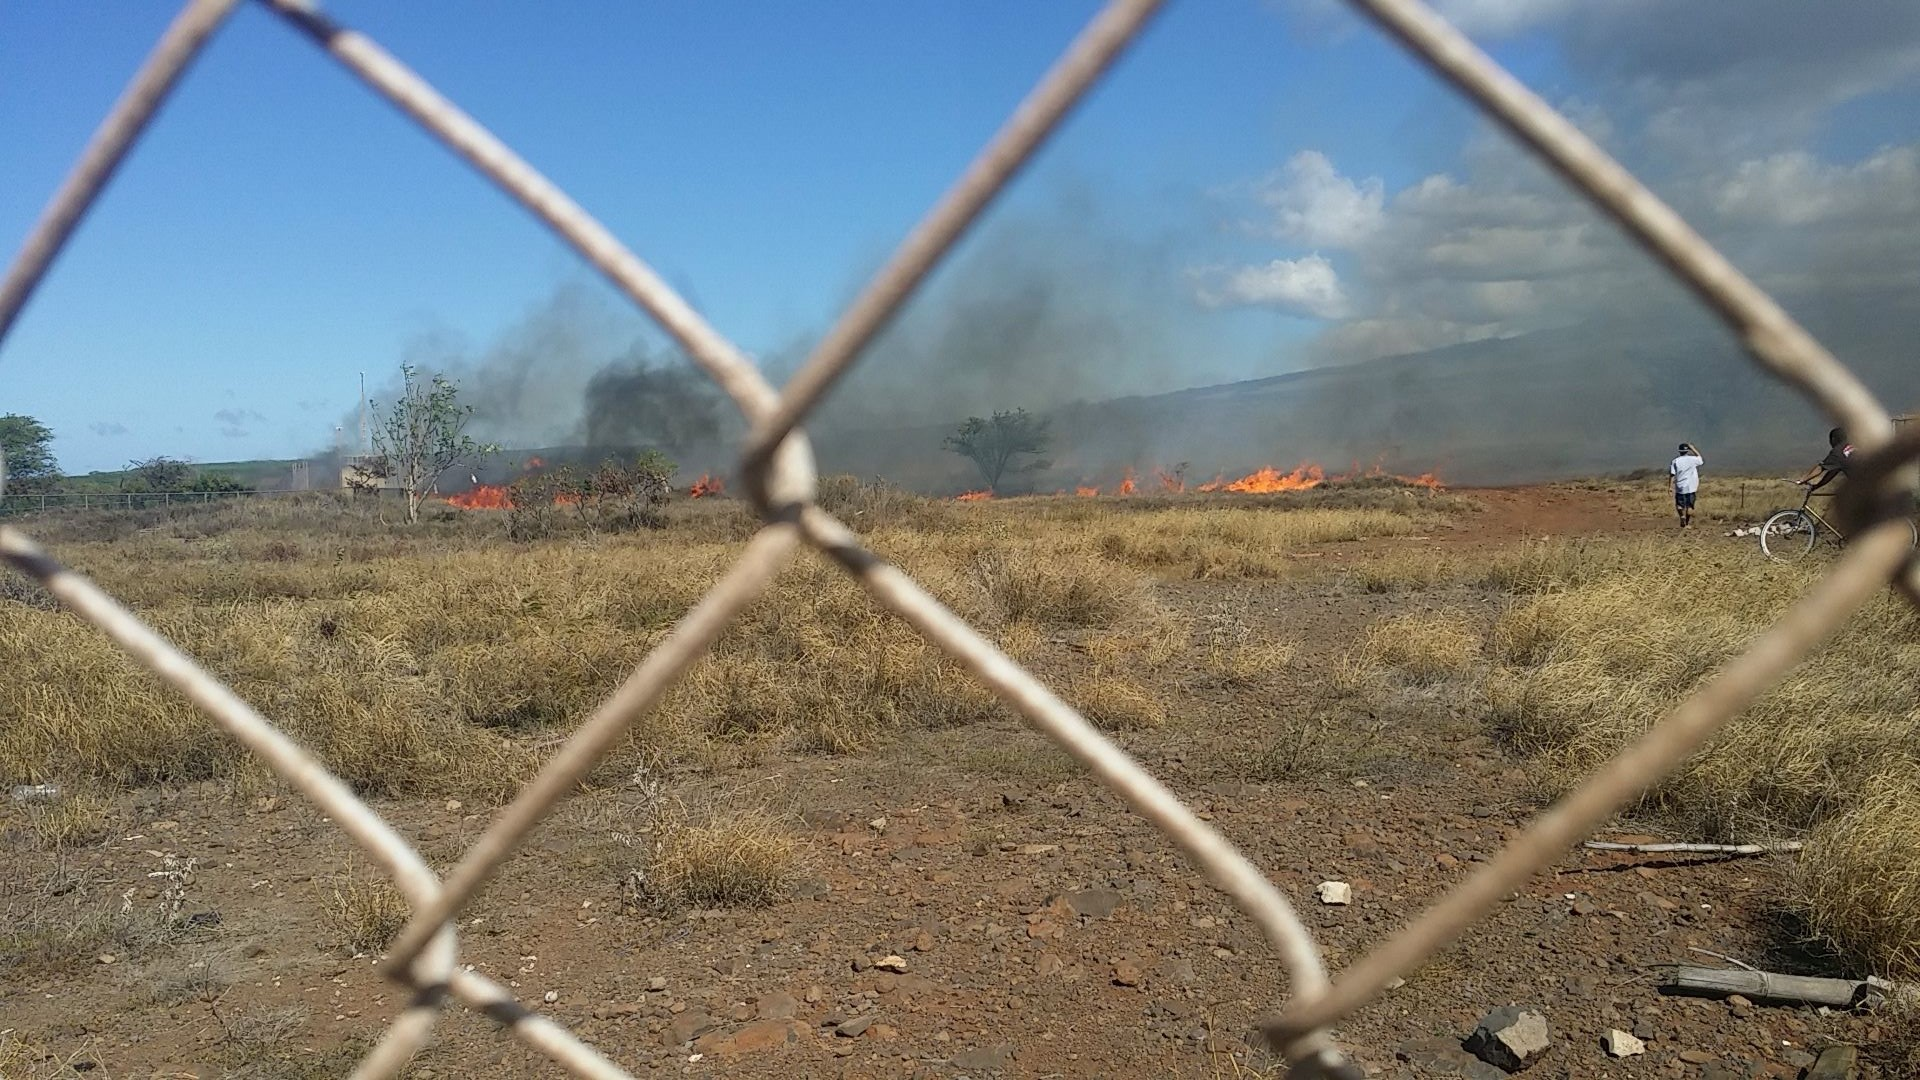 Kīhei fire, Oct. 20, 2015. Photo credit: Julia Toro.